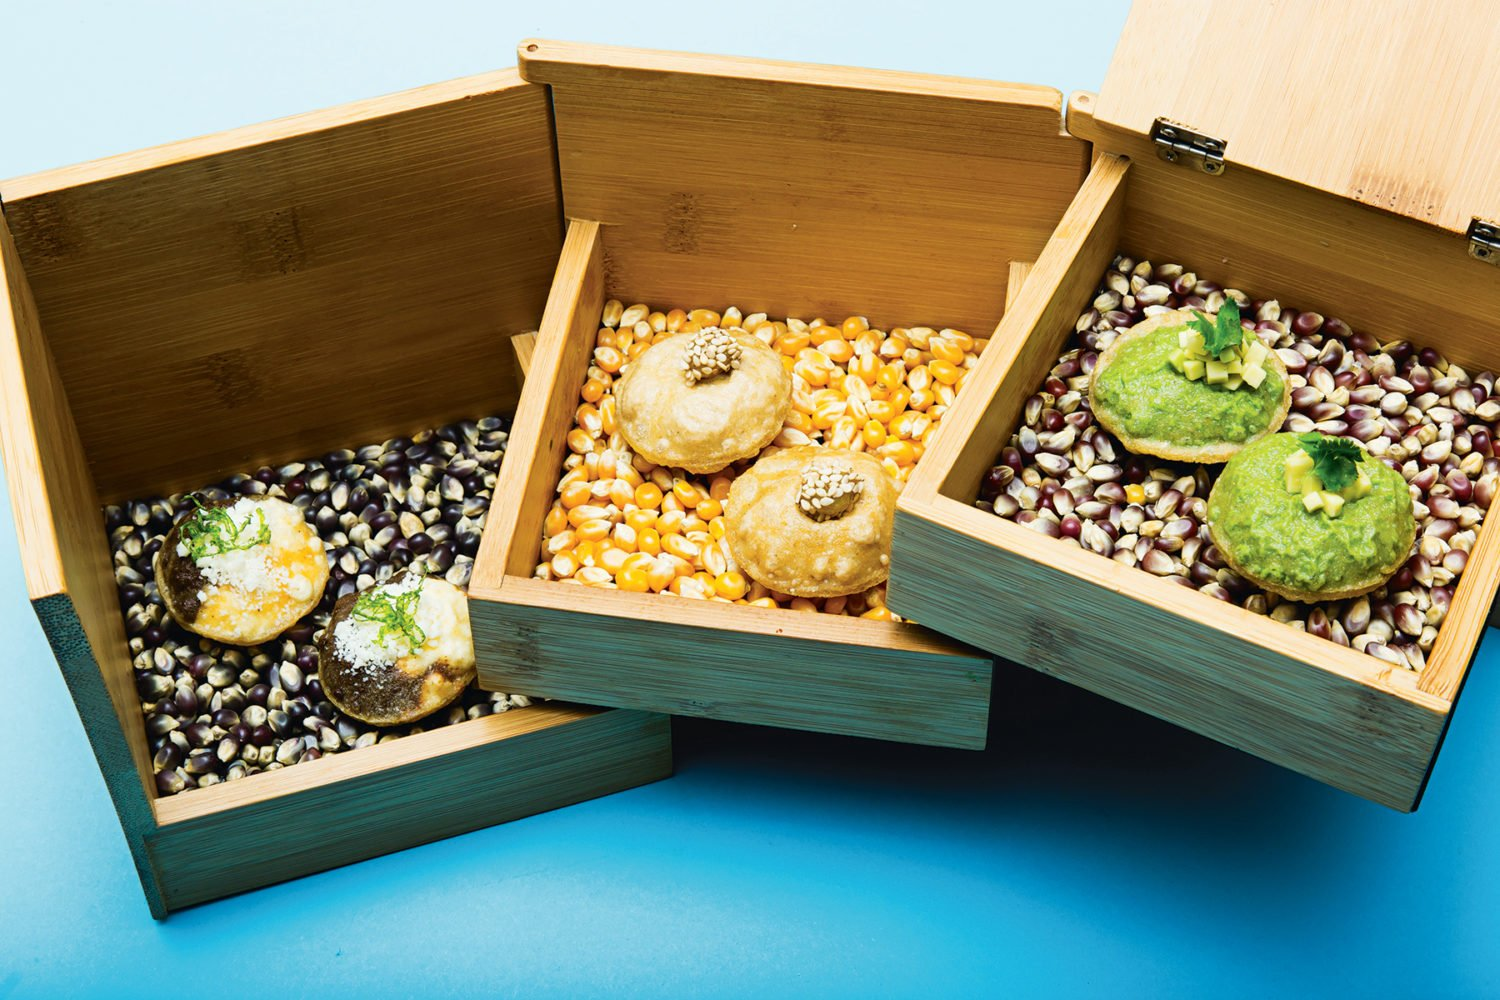 Wooden jewelry box for masa puffs at Pineapple and Pearls. Photograph by Scott Suchman.